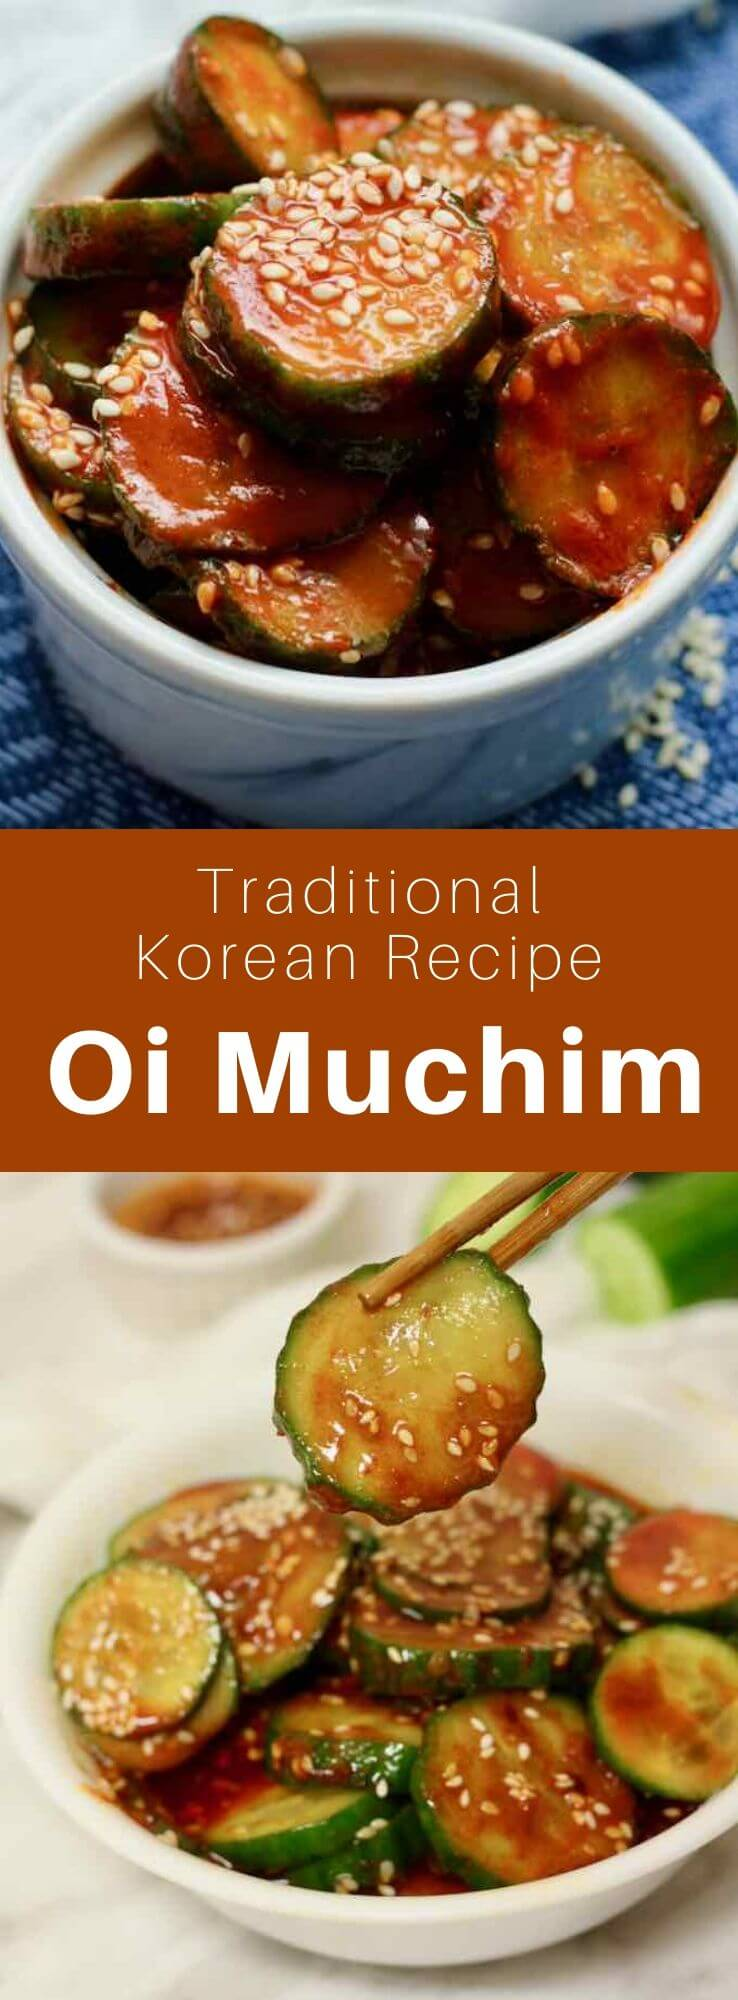 Oi muchim (or oi saengche) is a delicious traditional salad from Korea that is prepared with cucumber and red pepper flakes. #KoreanFood #KoreanRecipe #KoreanCuisine #WorldCuisine #196flavors